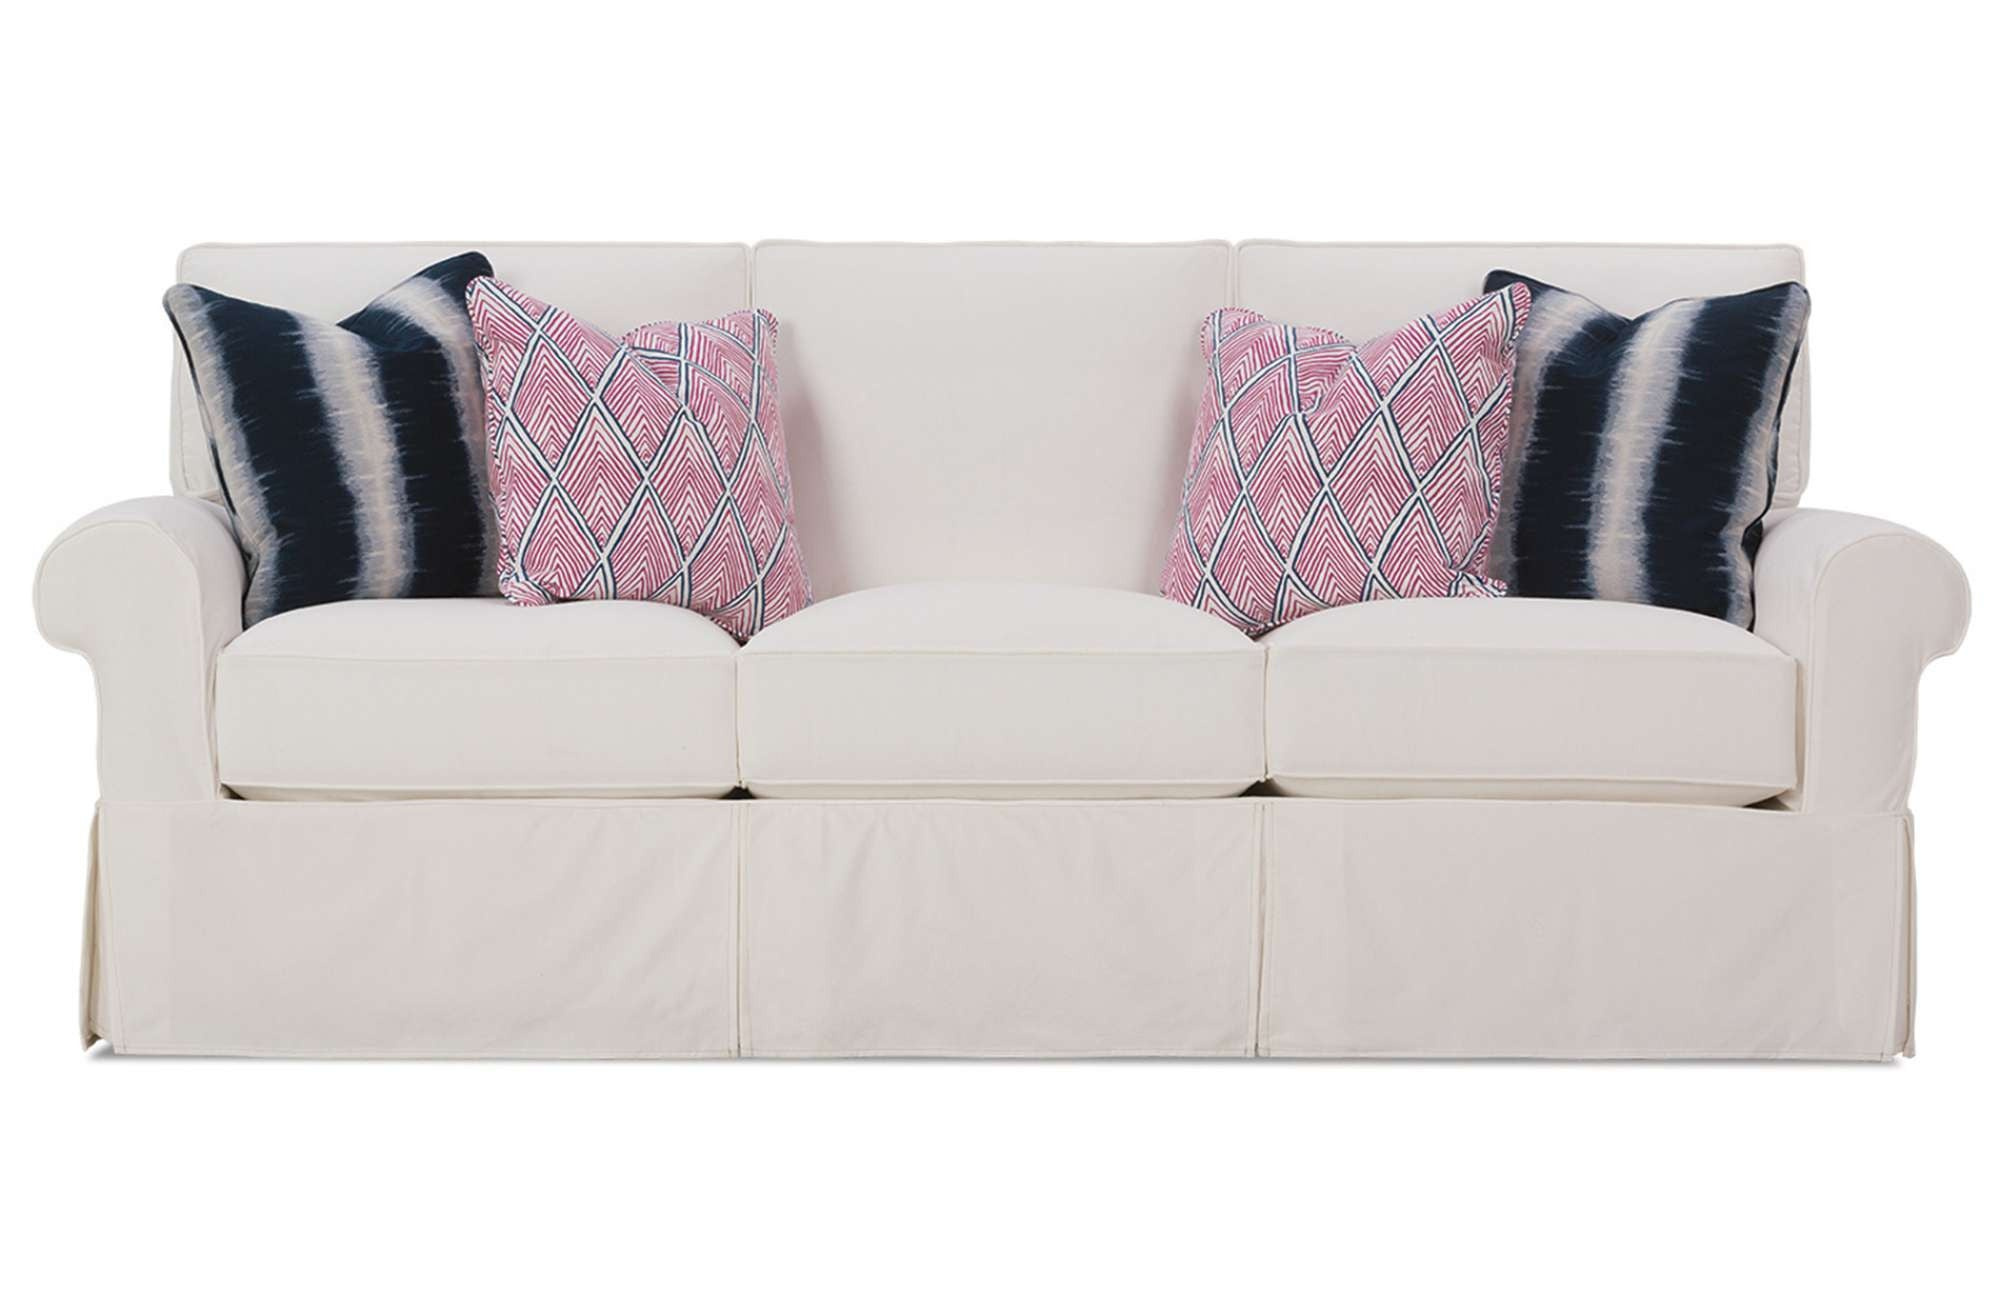 kagan s home rowe easton slipcover sofa rh kaganshome com rowe furniture nantucket slipcover sofa rowe slipcover sofa nantucket